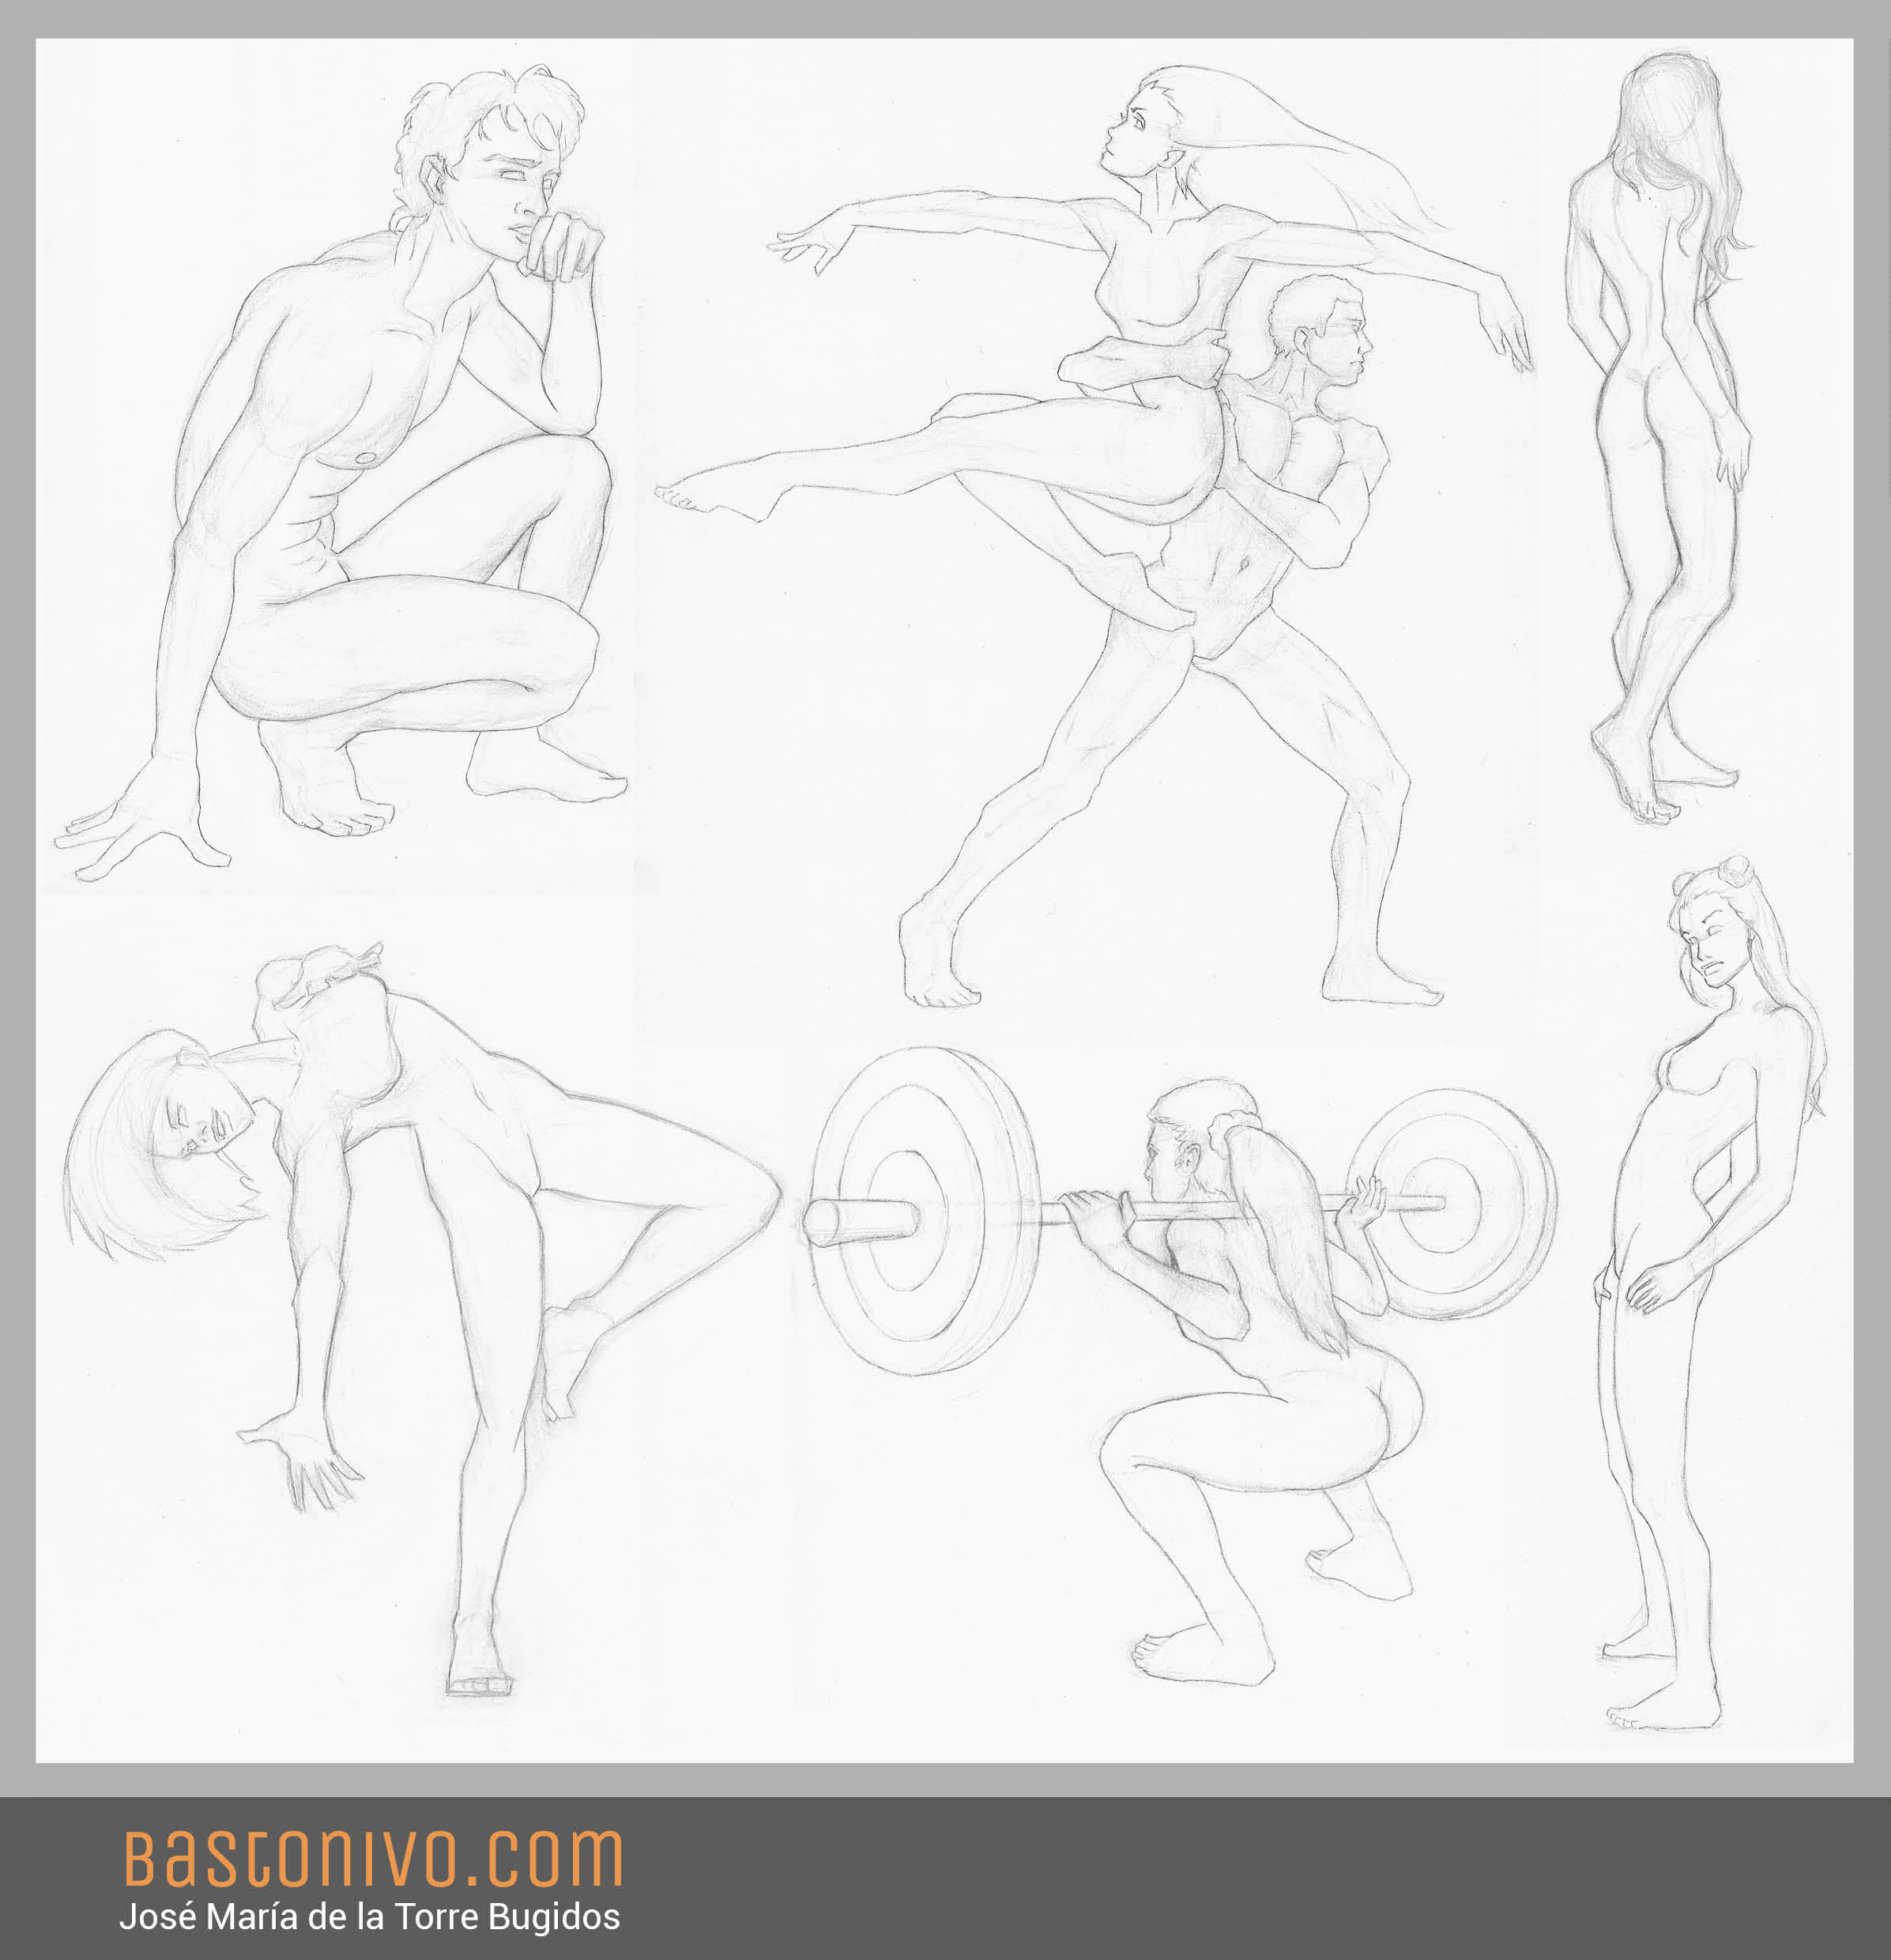 Anatomy and poses study. Traditional, pencil.